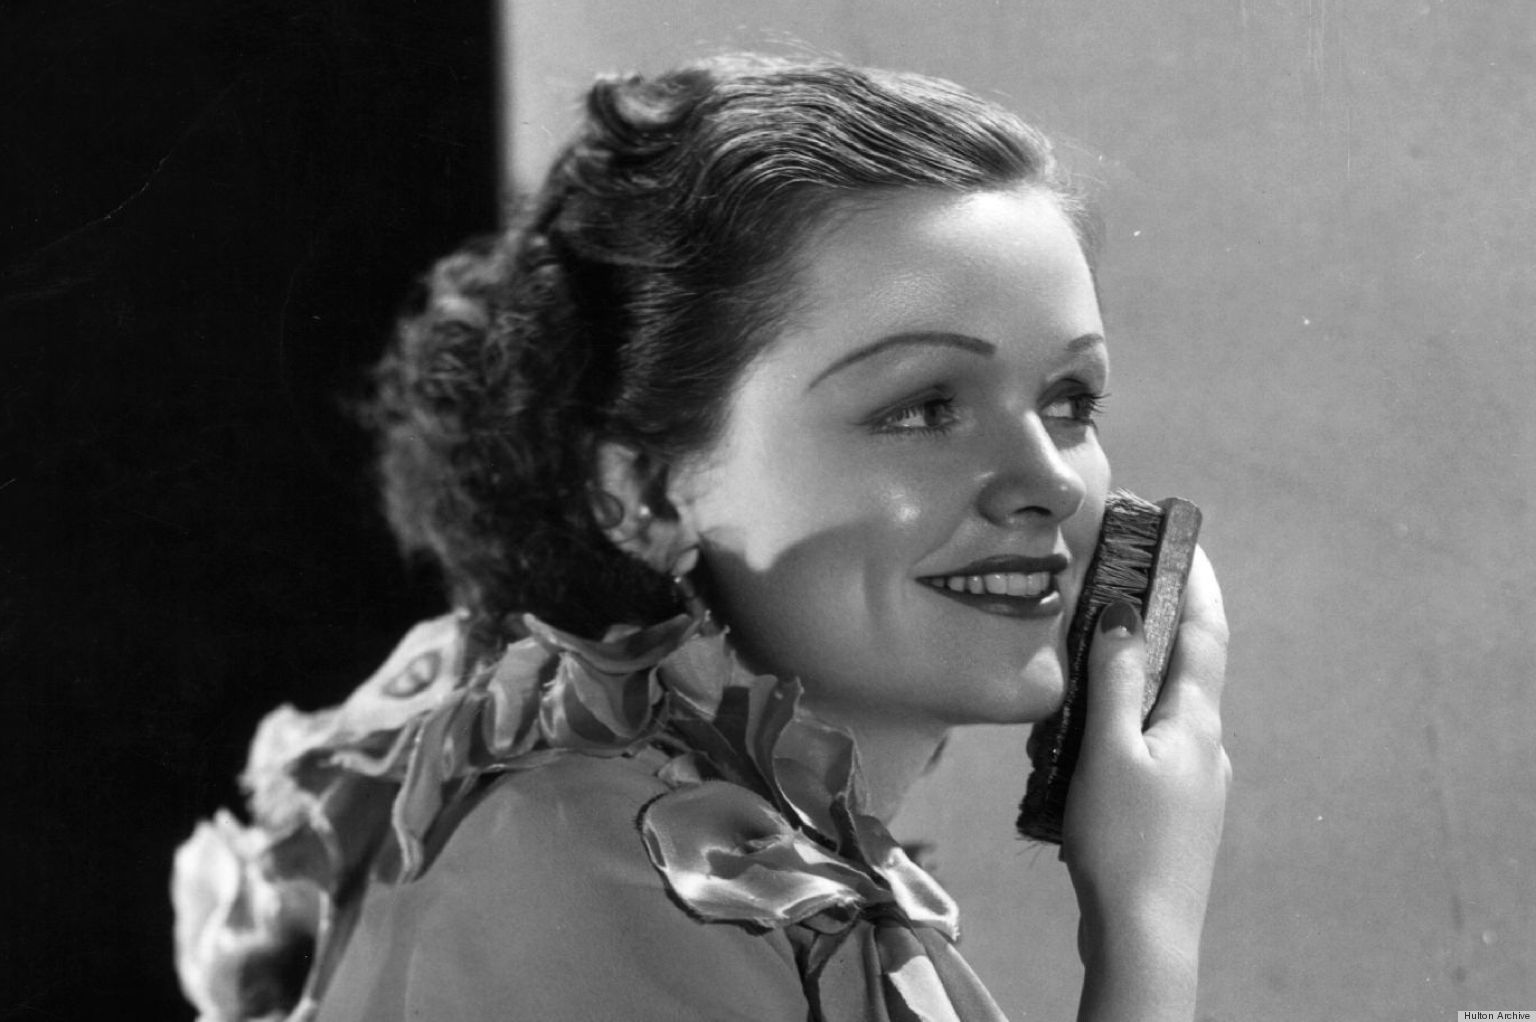 circa 1935: Port Kelton, star of RKO's 'Bachelor Bait' scrubs her face, neck and hands with a soft complexion brush as part of her regular beauty routine. (Photo by Robert Coburn/Hulton Archive/Getty Images)